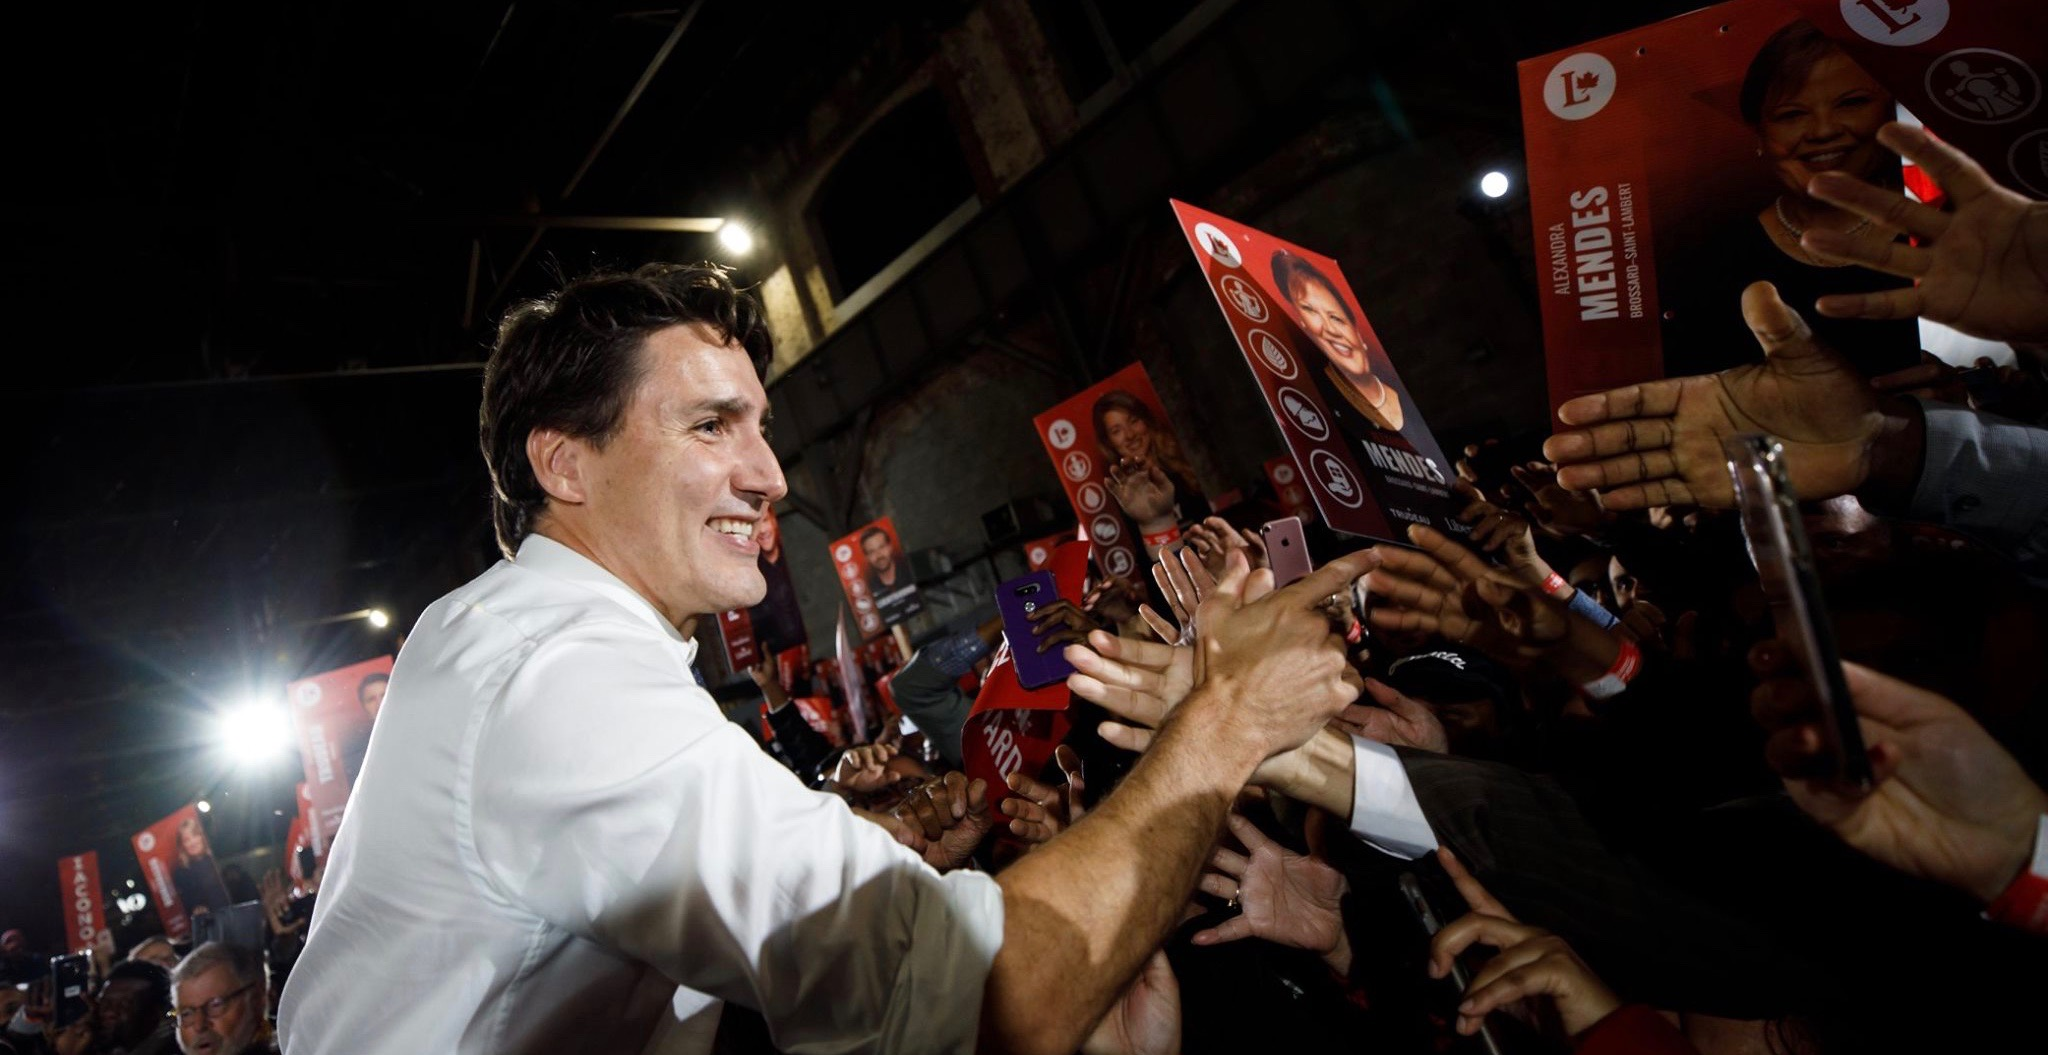 Canada Votes: Justin Trudeau's Liberals projected to win